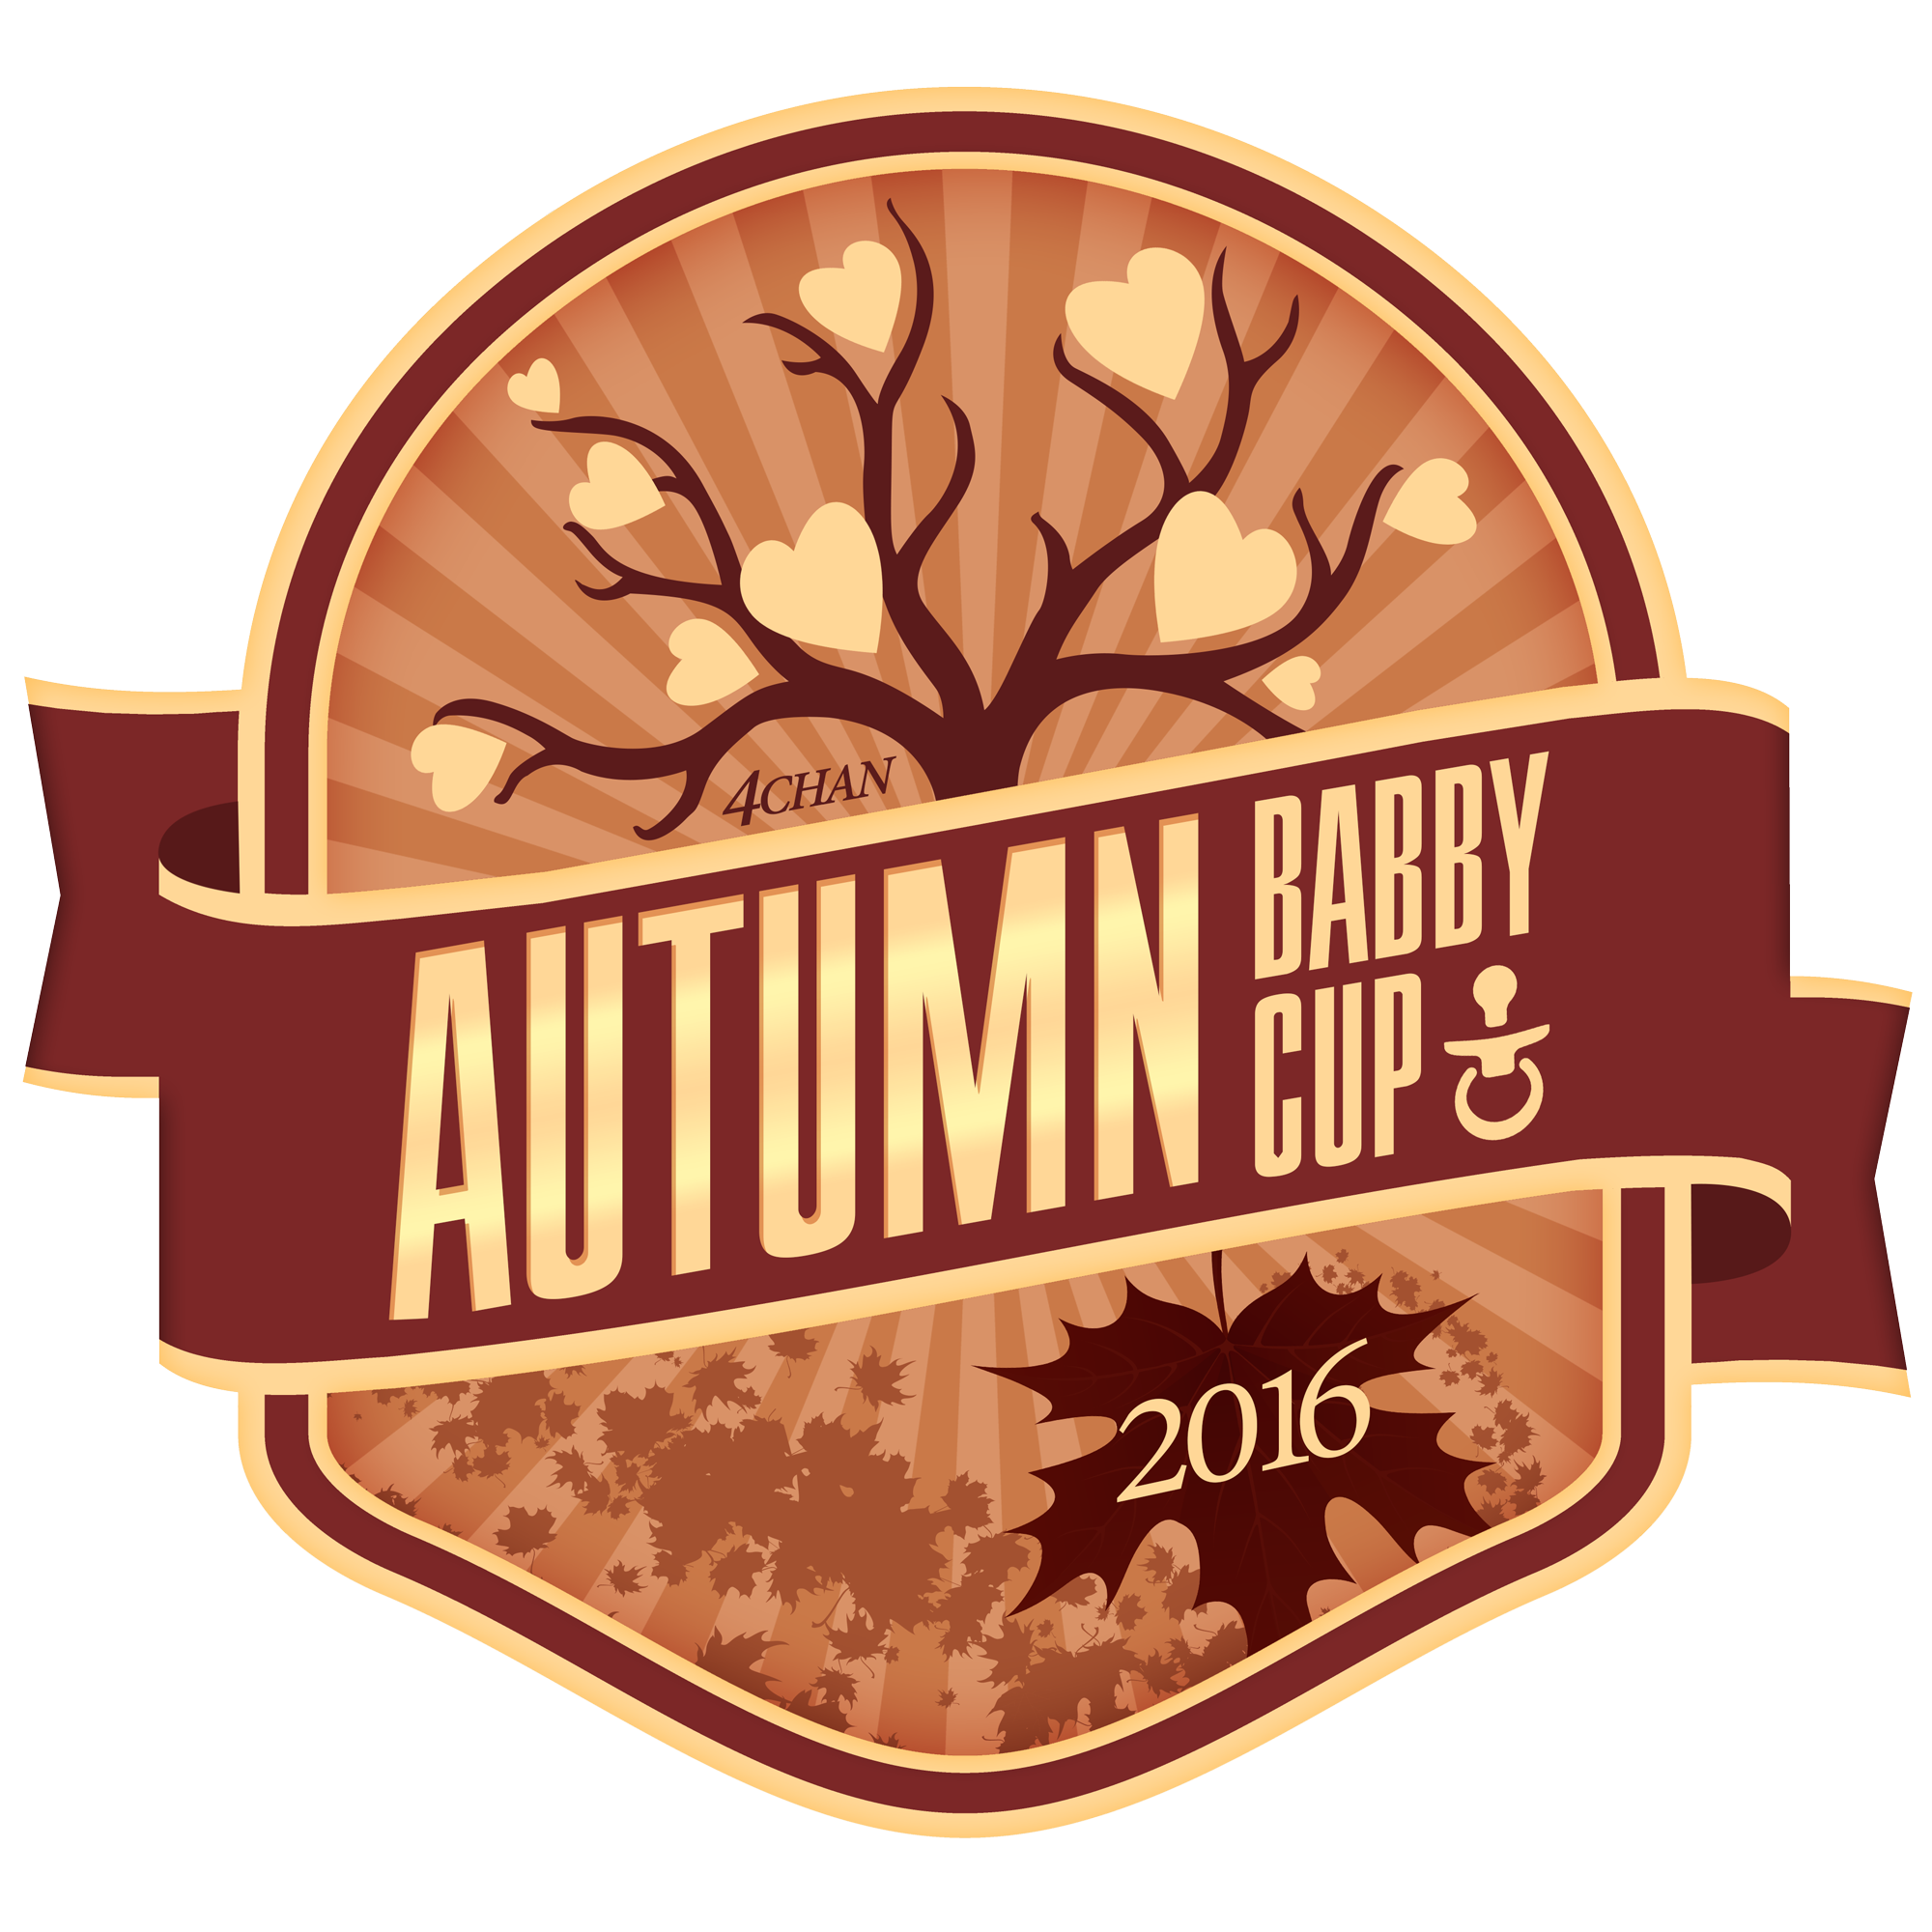 2016 4chan Autumn Babby Cup